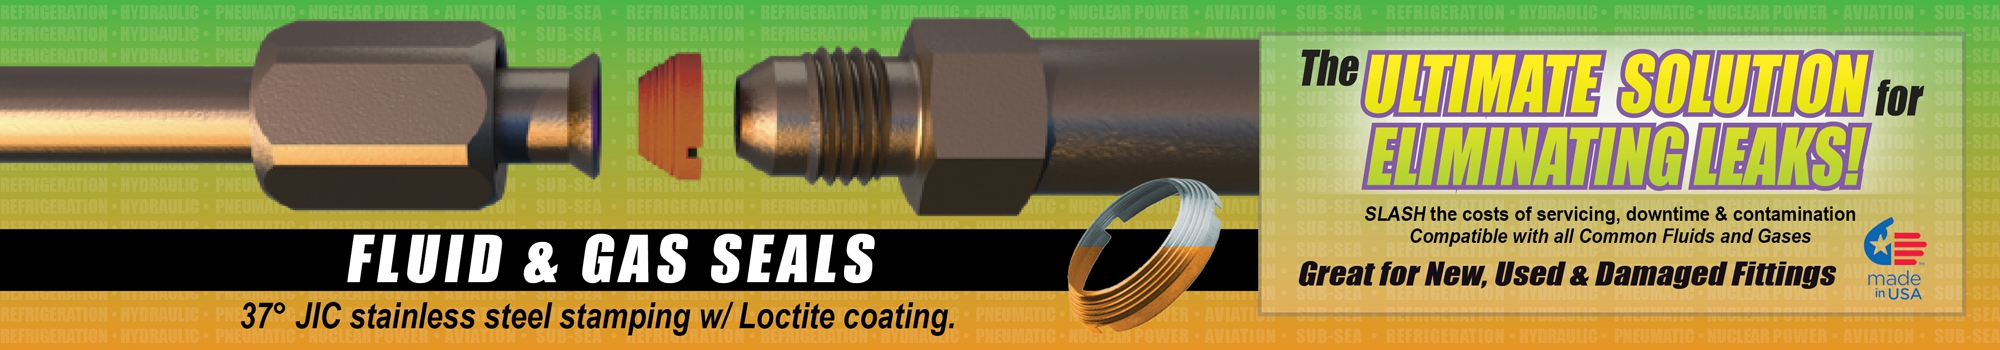 Flaretite Seal | Ultimate Solution for Hydraulic Leaks!